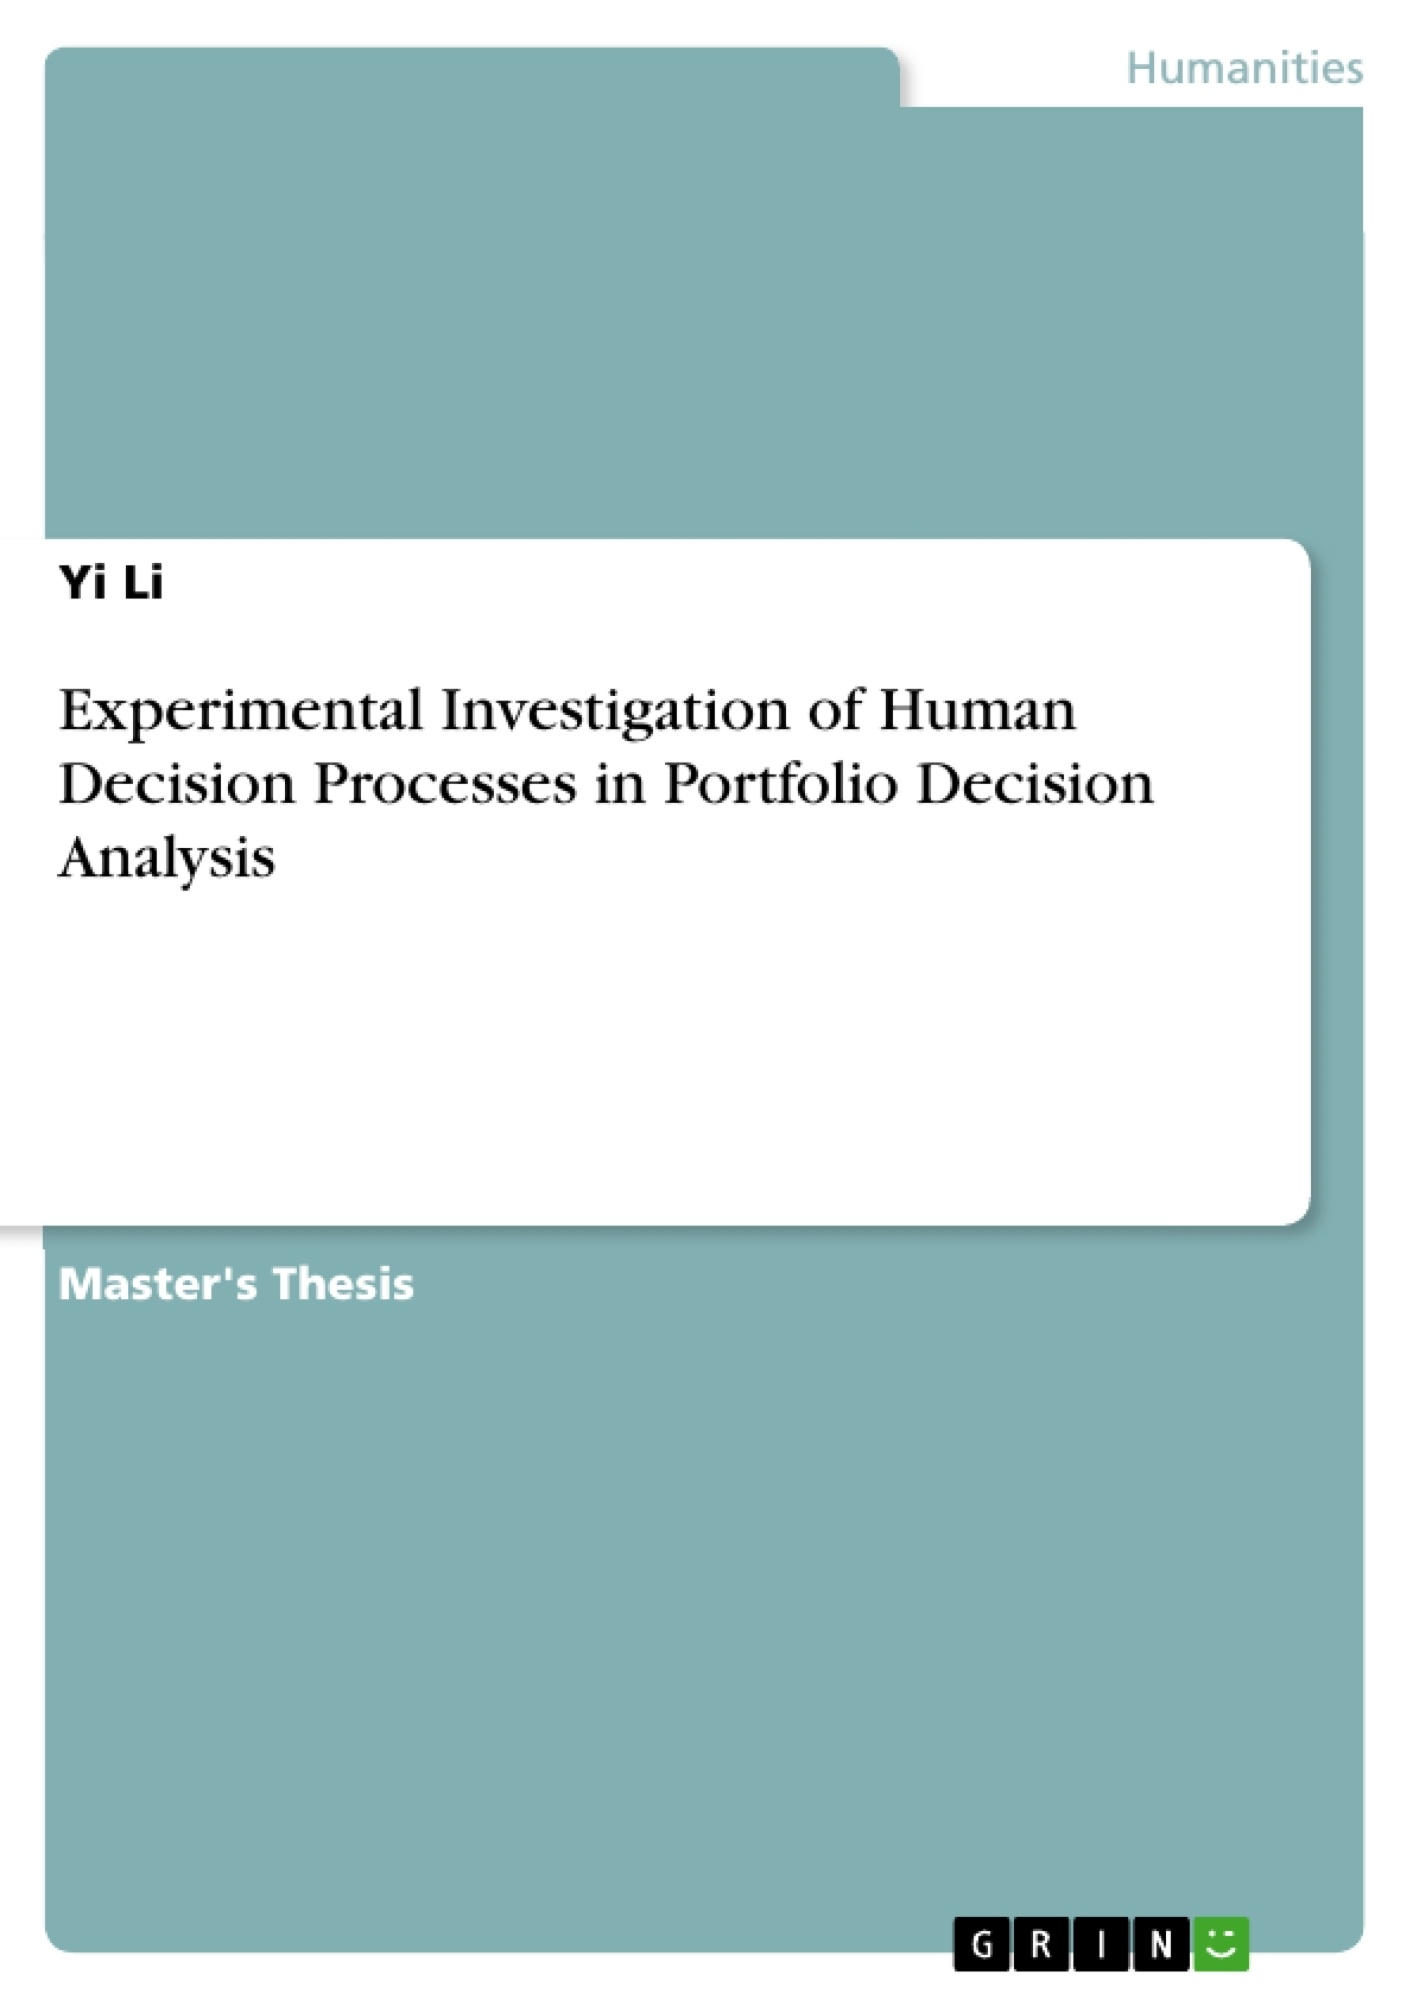 Title: Experimental Investigation of Human Decision Processes in Portfolio Decision Analysis